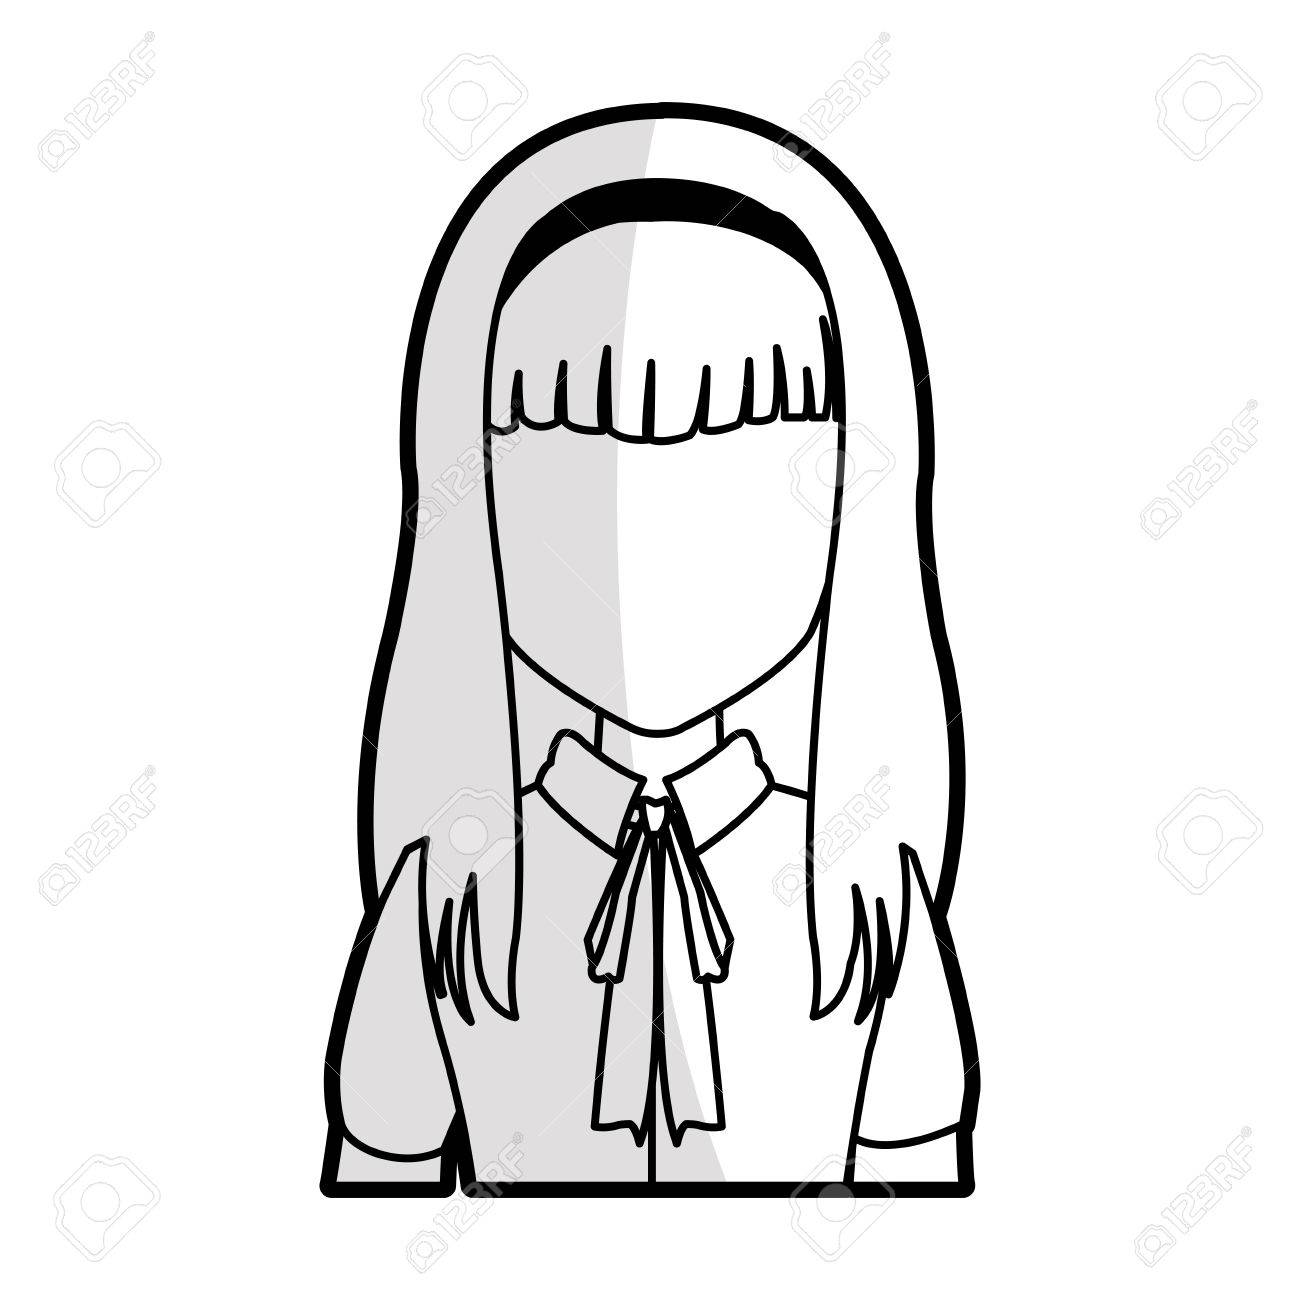 Woman With Long Straight Hair With Fringe Icon Image Vector